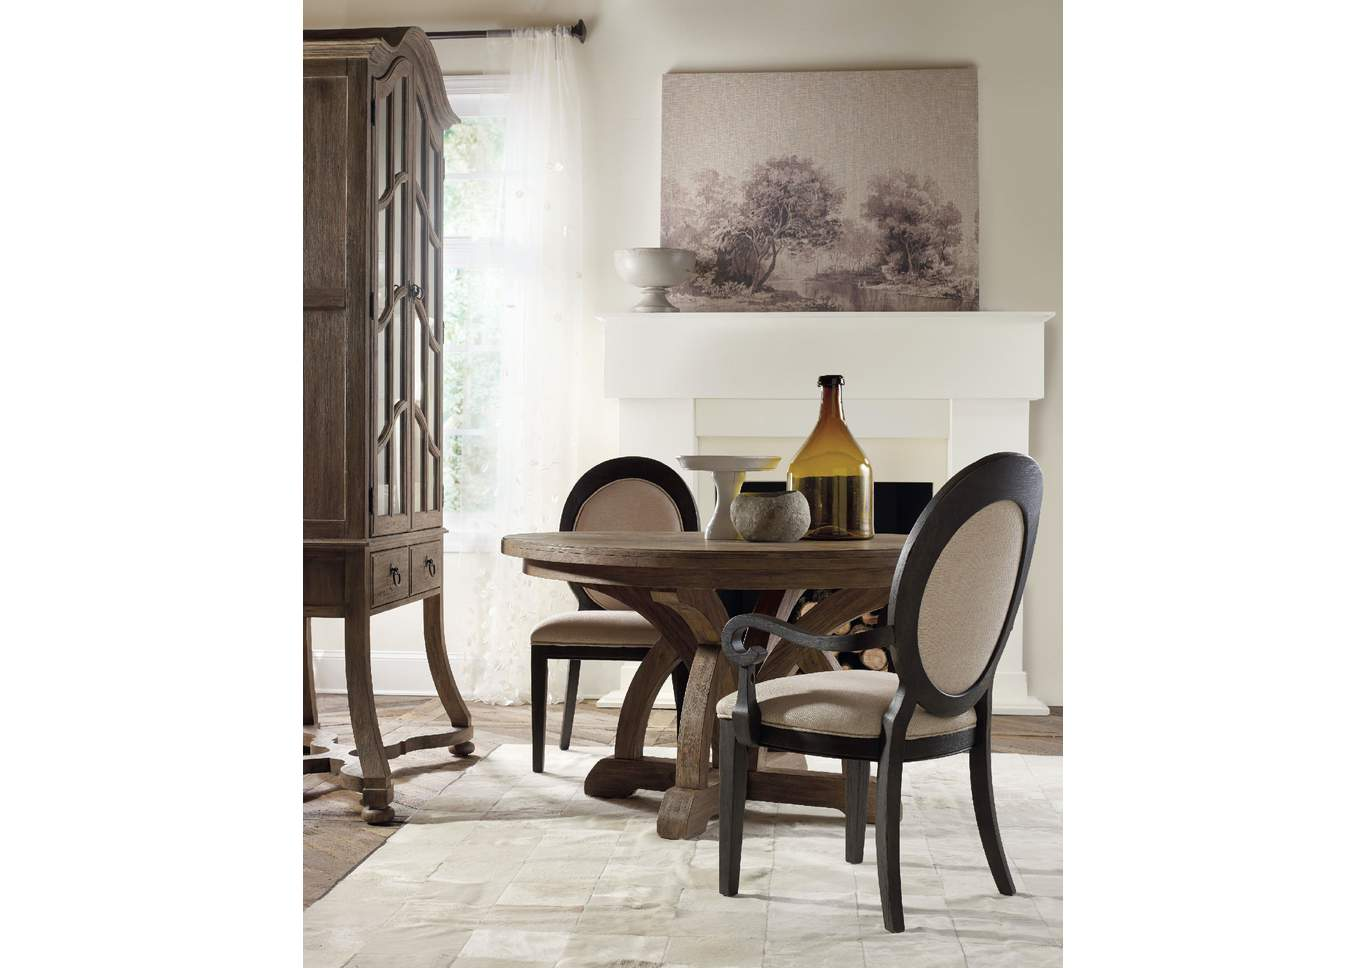 Ivan smith corsica round dining table w 1 18 leaf w arm for Round dining table w leaf